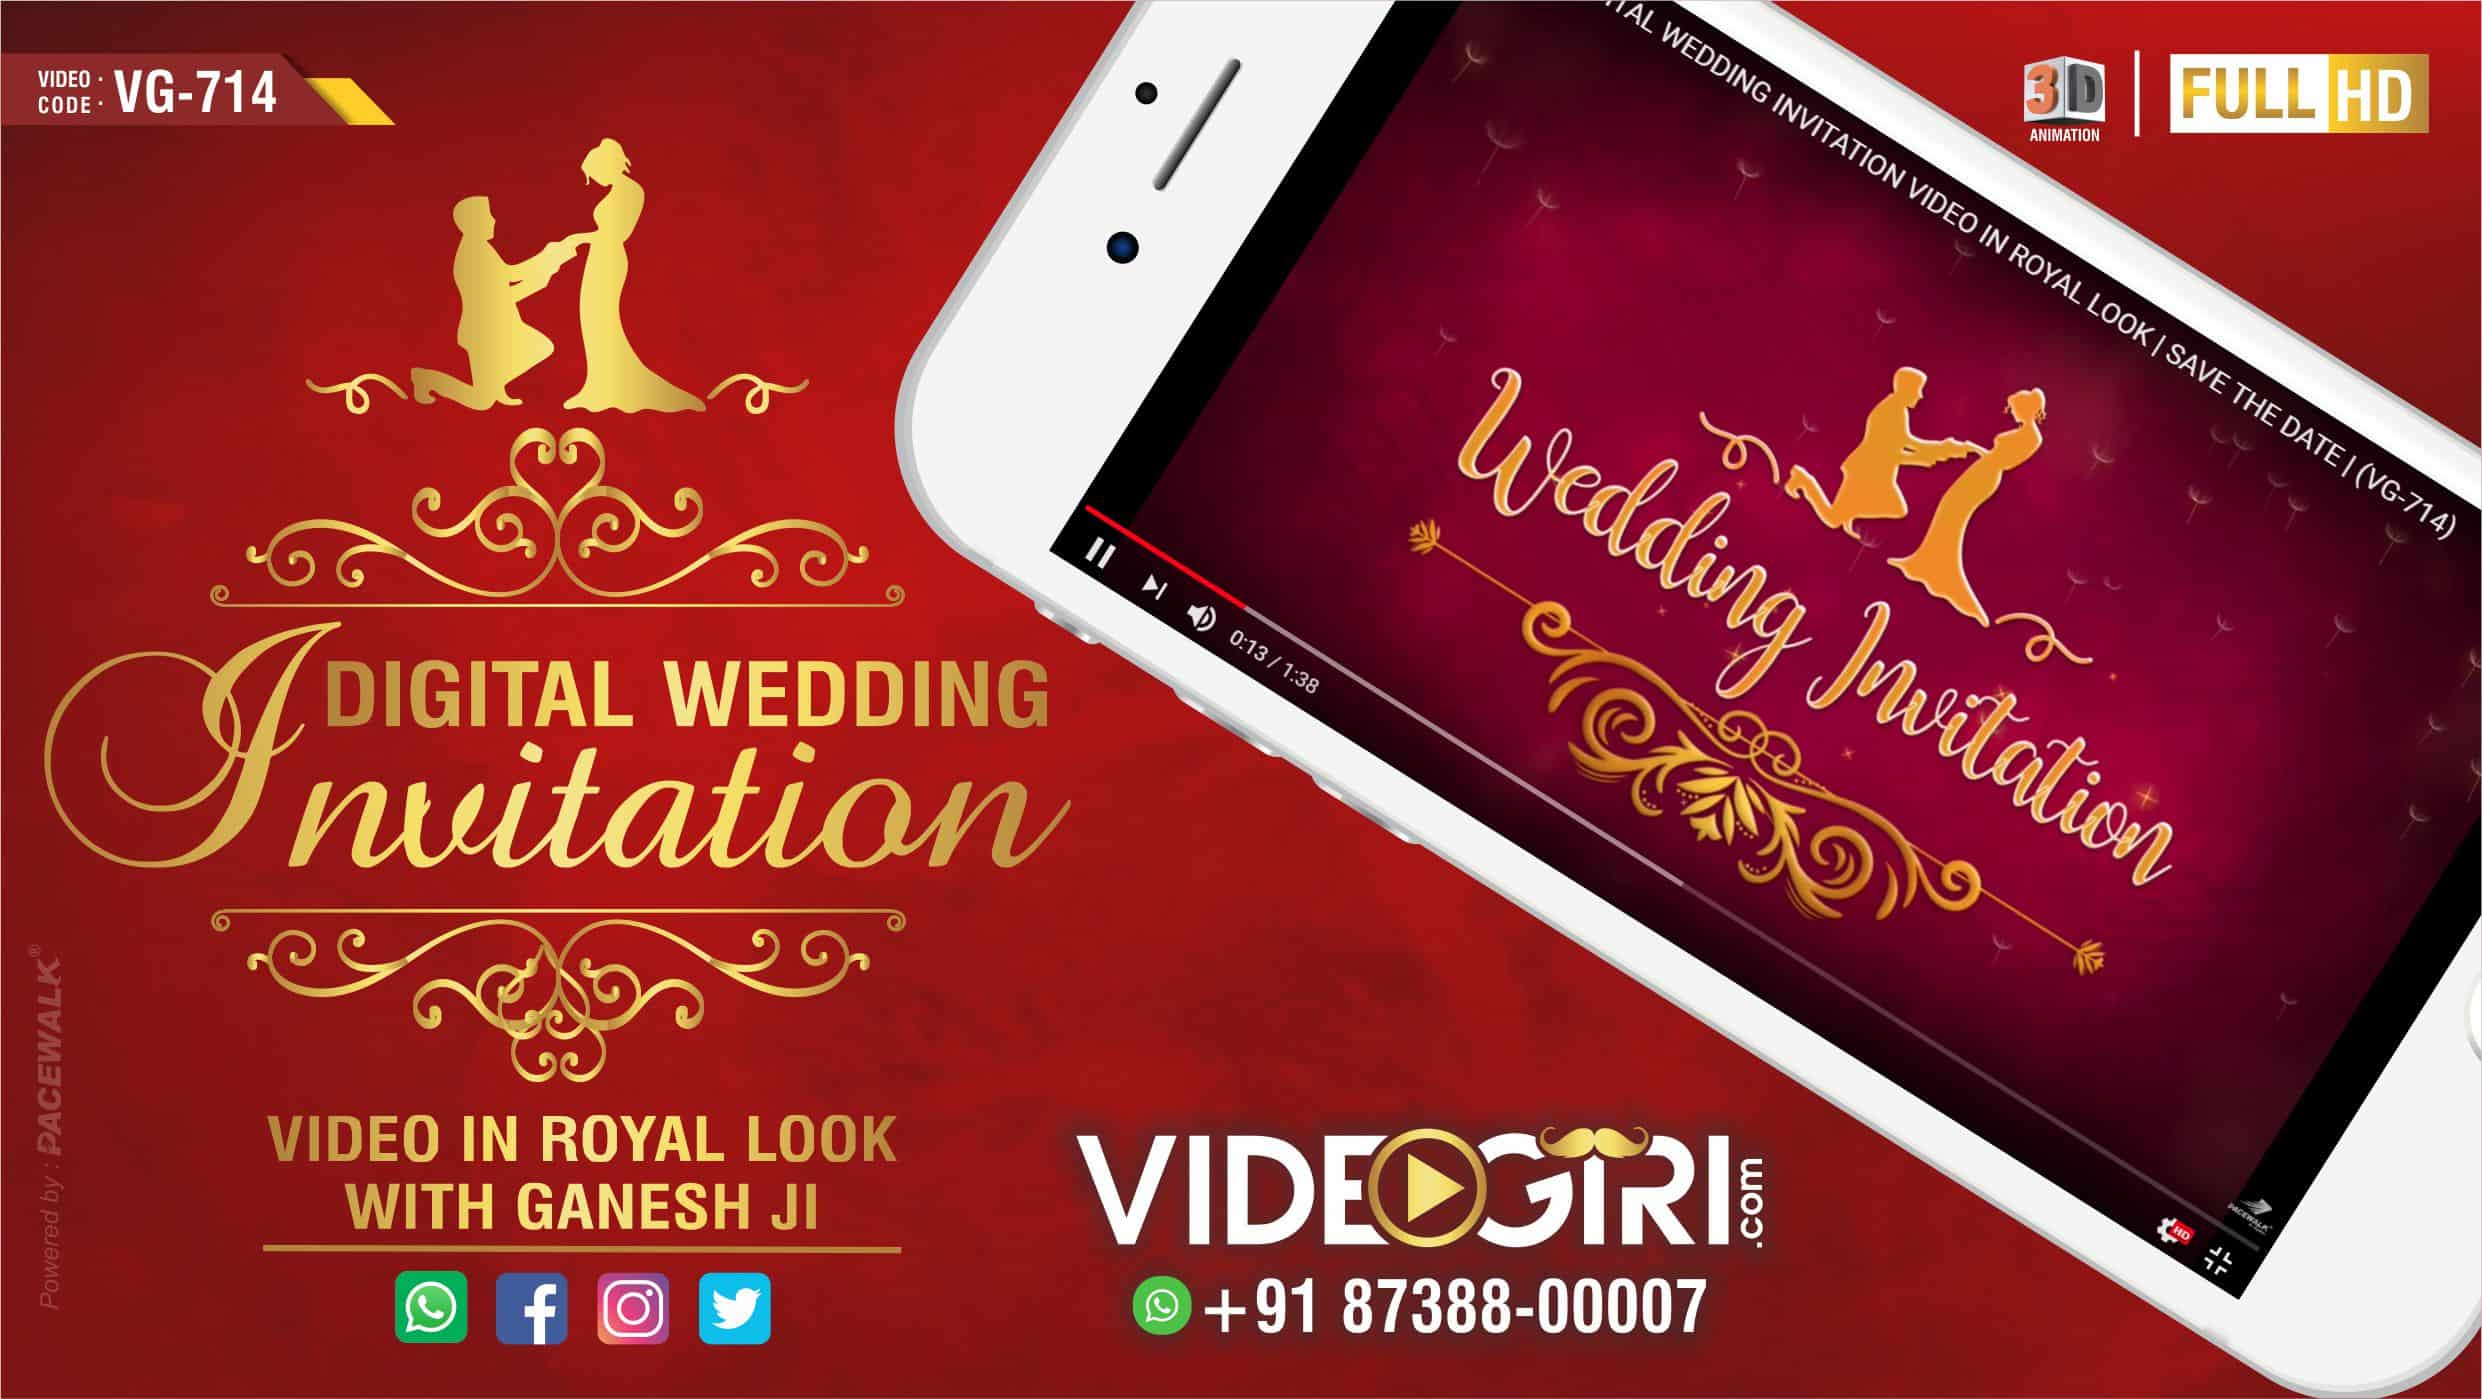 DIGITAL WEDDING INVITATION VIDEO IN ROYAL LOOK (VG-714)